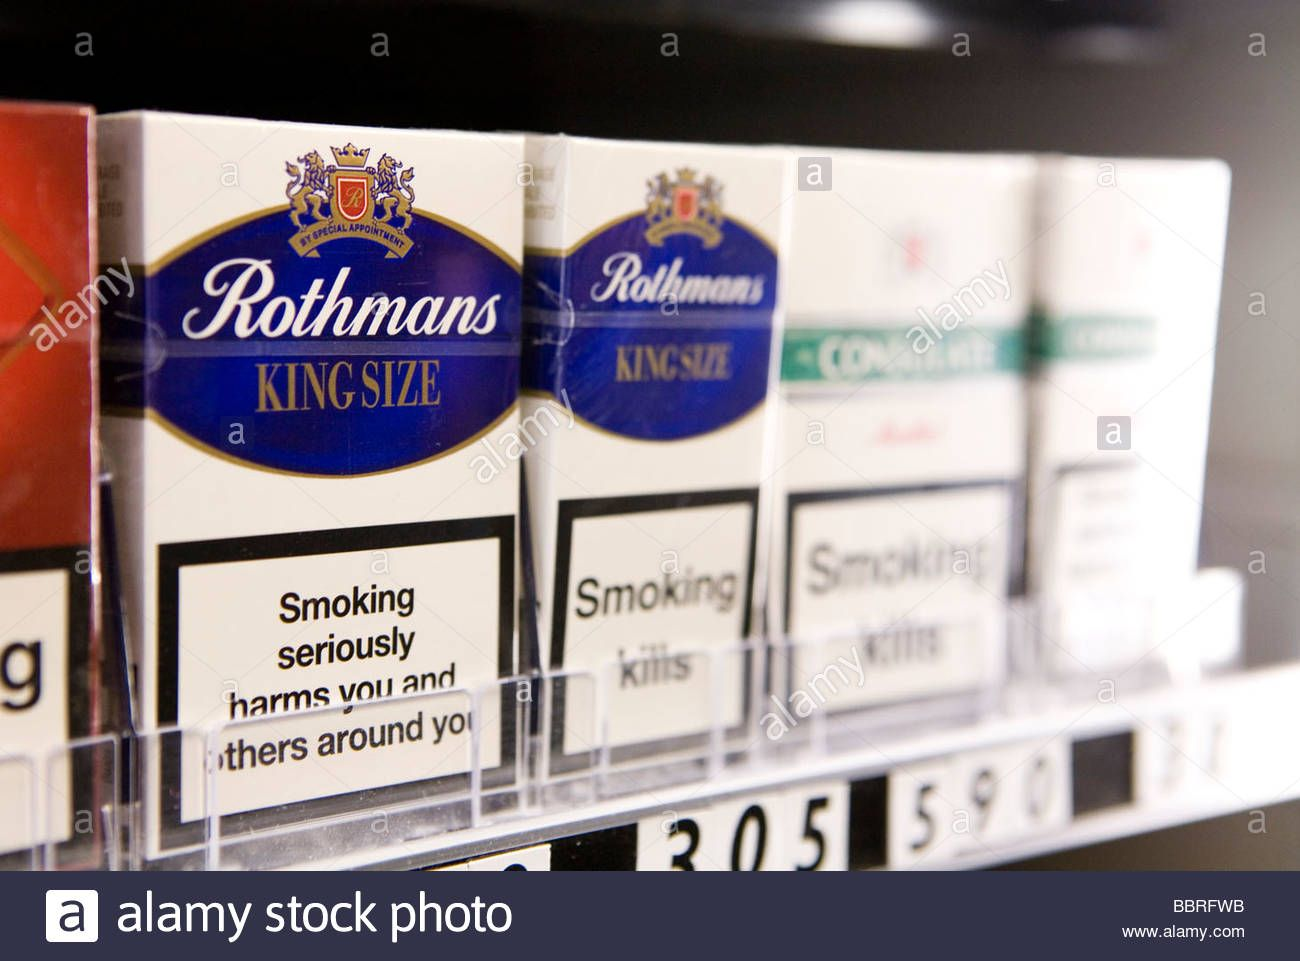 How much do Vogue cigarettes cost in Finland